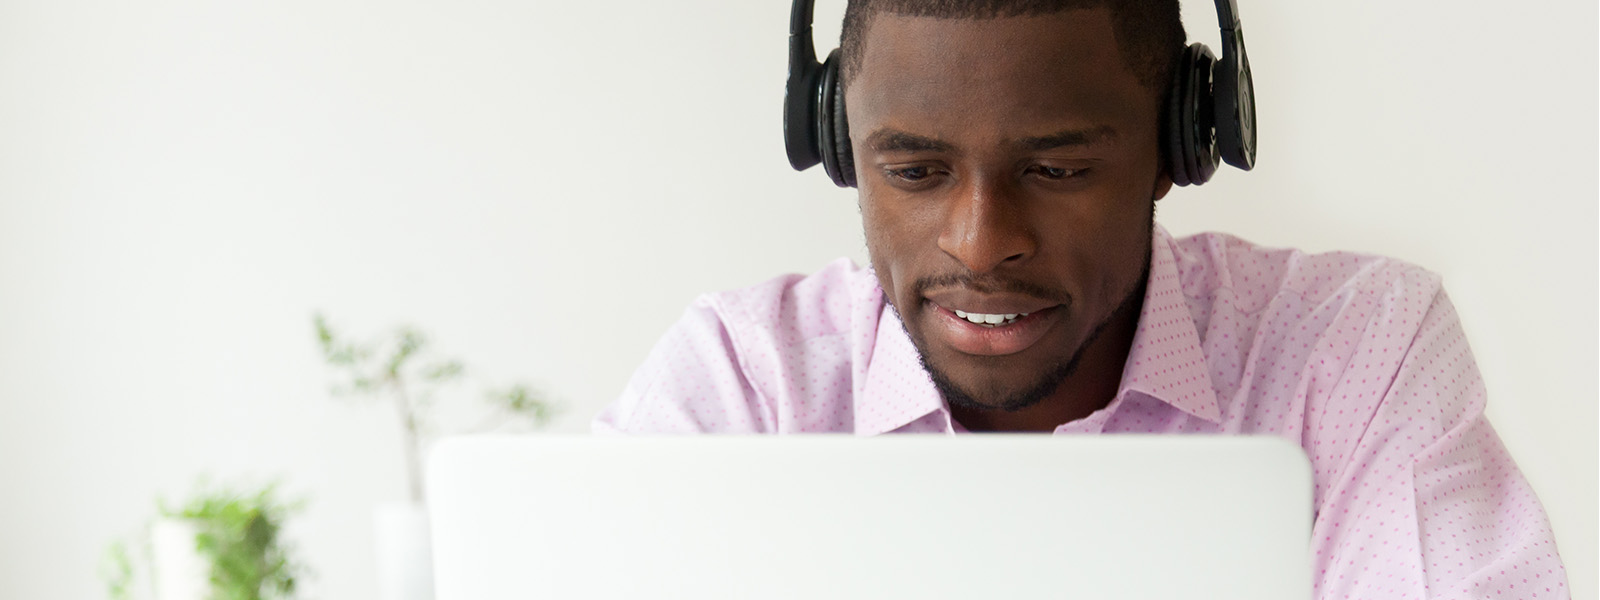 A middle-aged man with headphones working on a laptop.